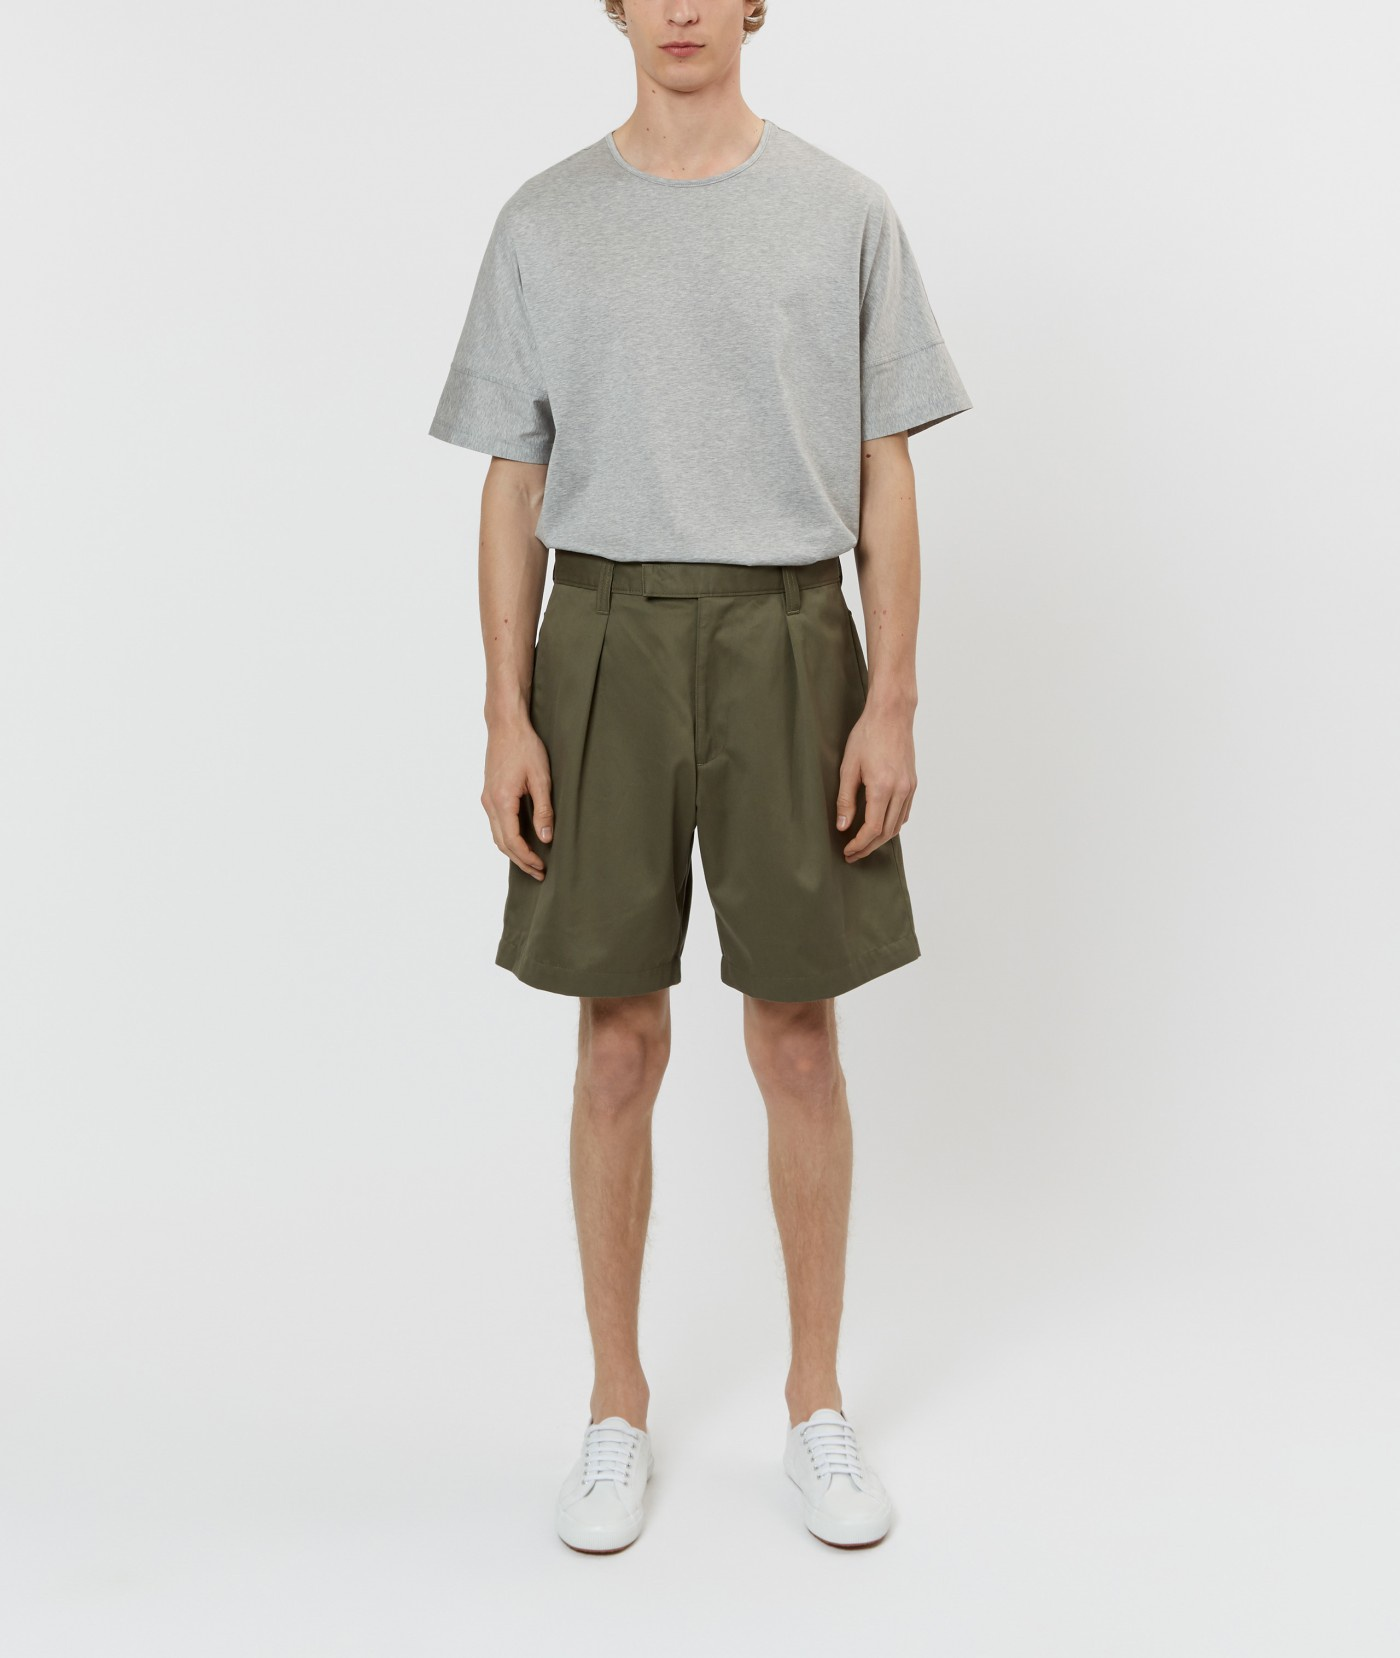 E. Tautz Army Green Naval Short